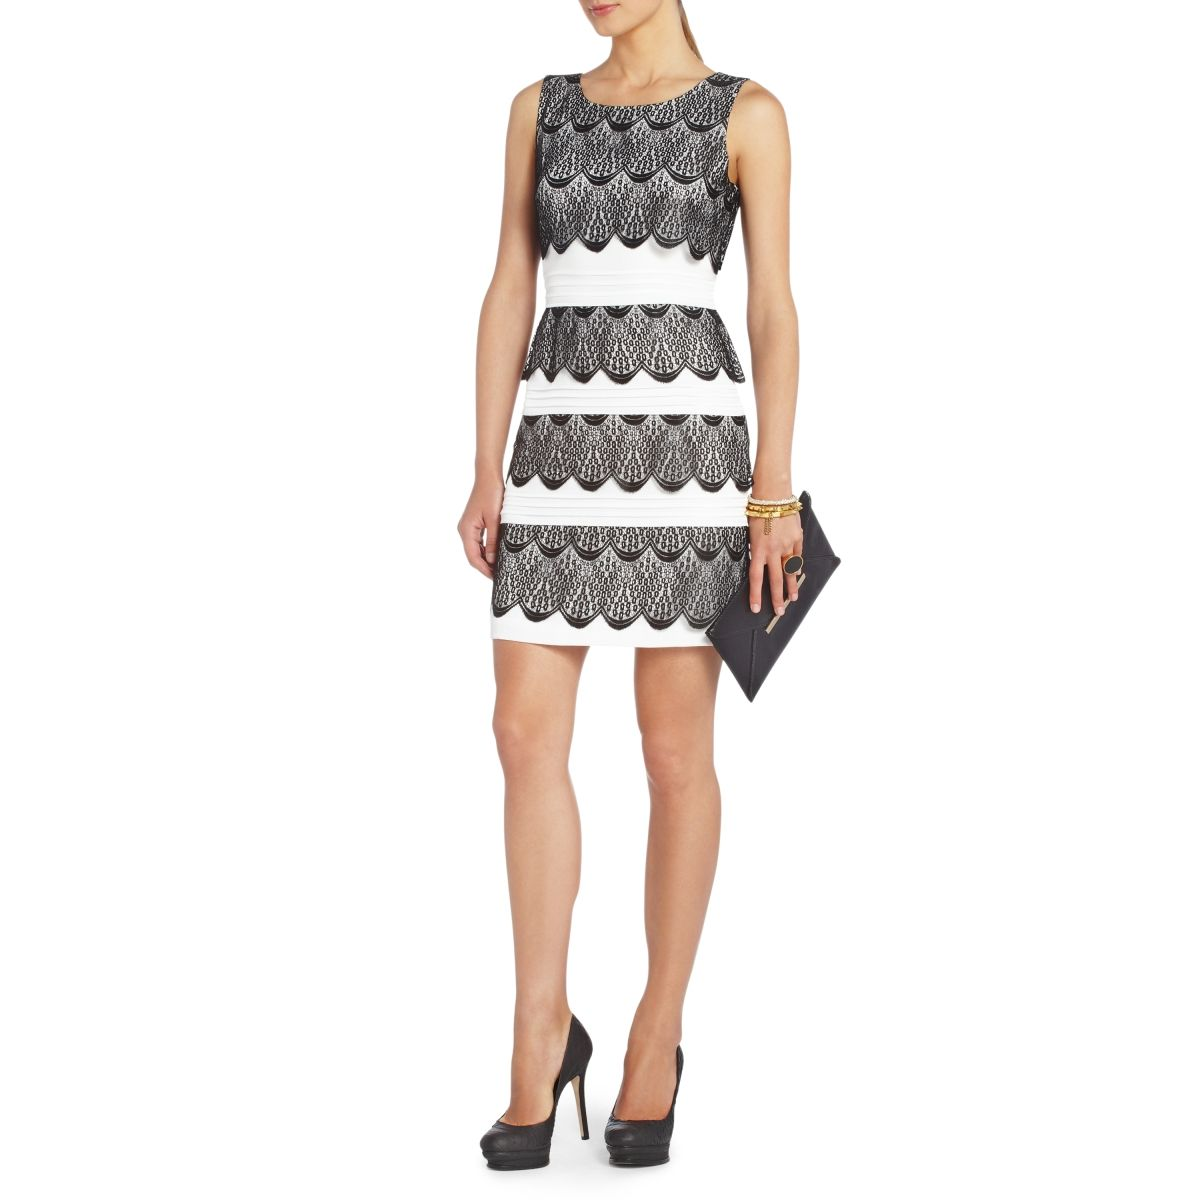 Saw this dress in Lord & Taylor today - LOVE IT. Black and white is ...